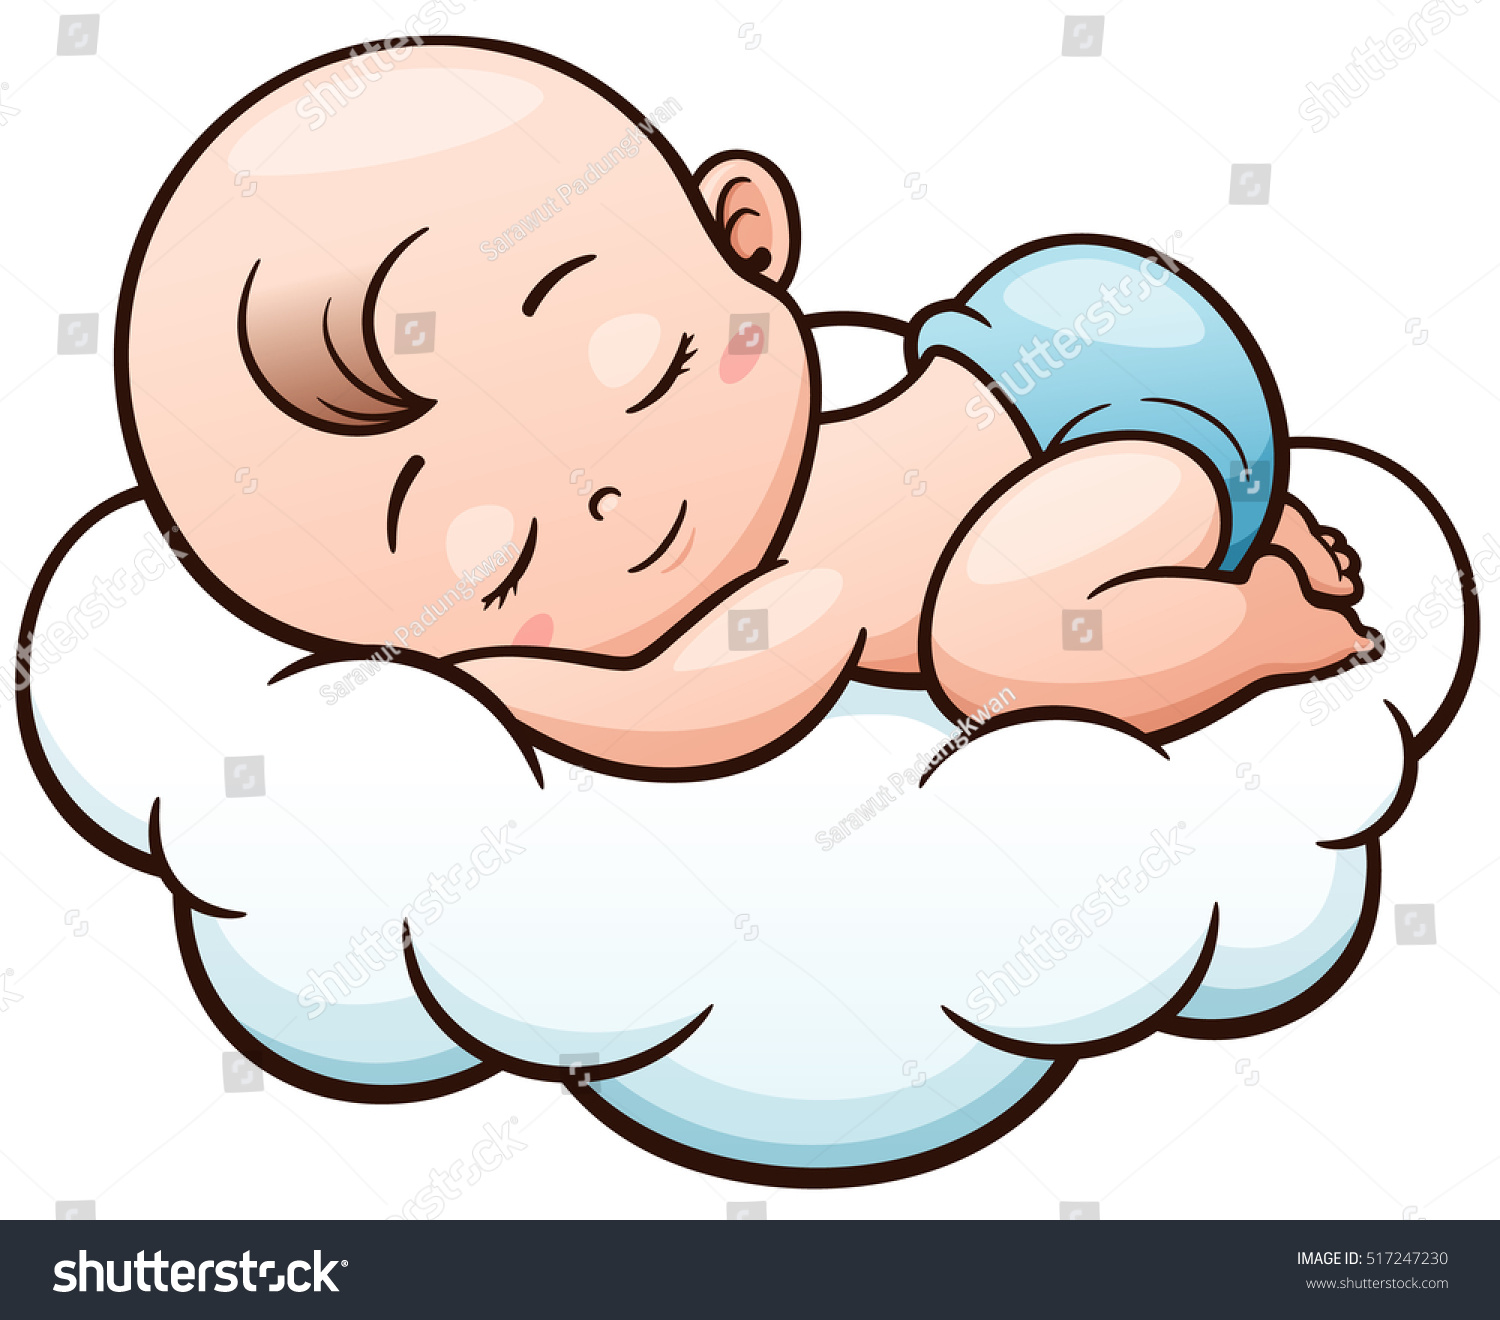 free clip art baby sleeping - photo #43